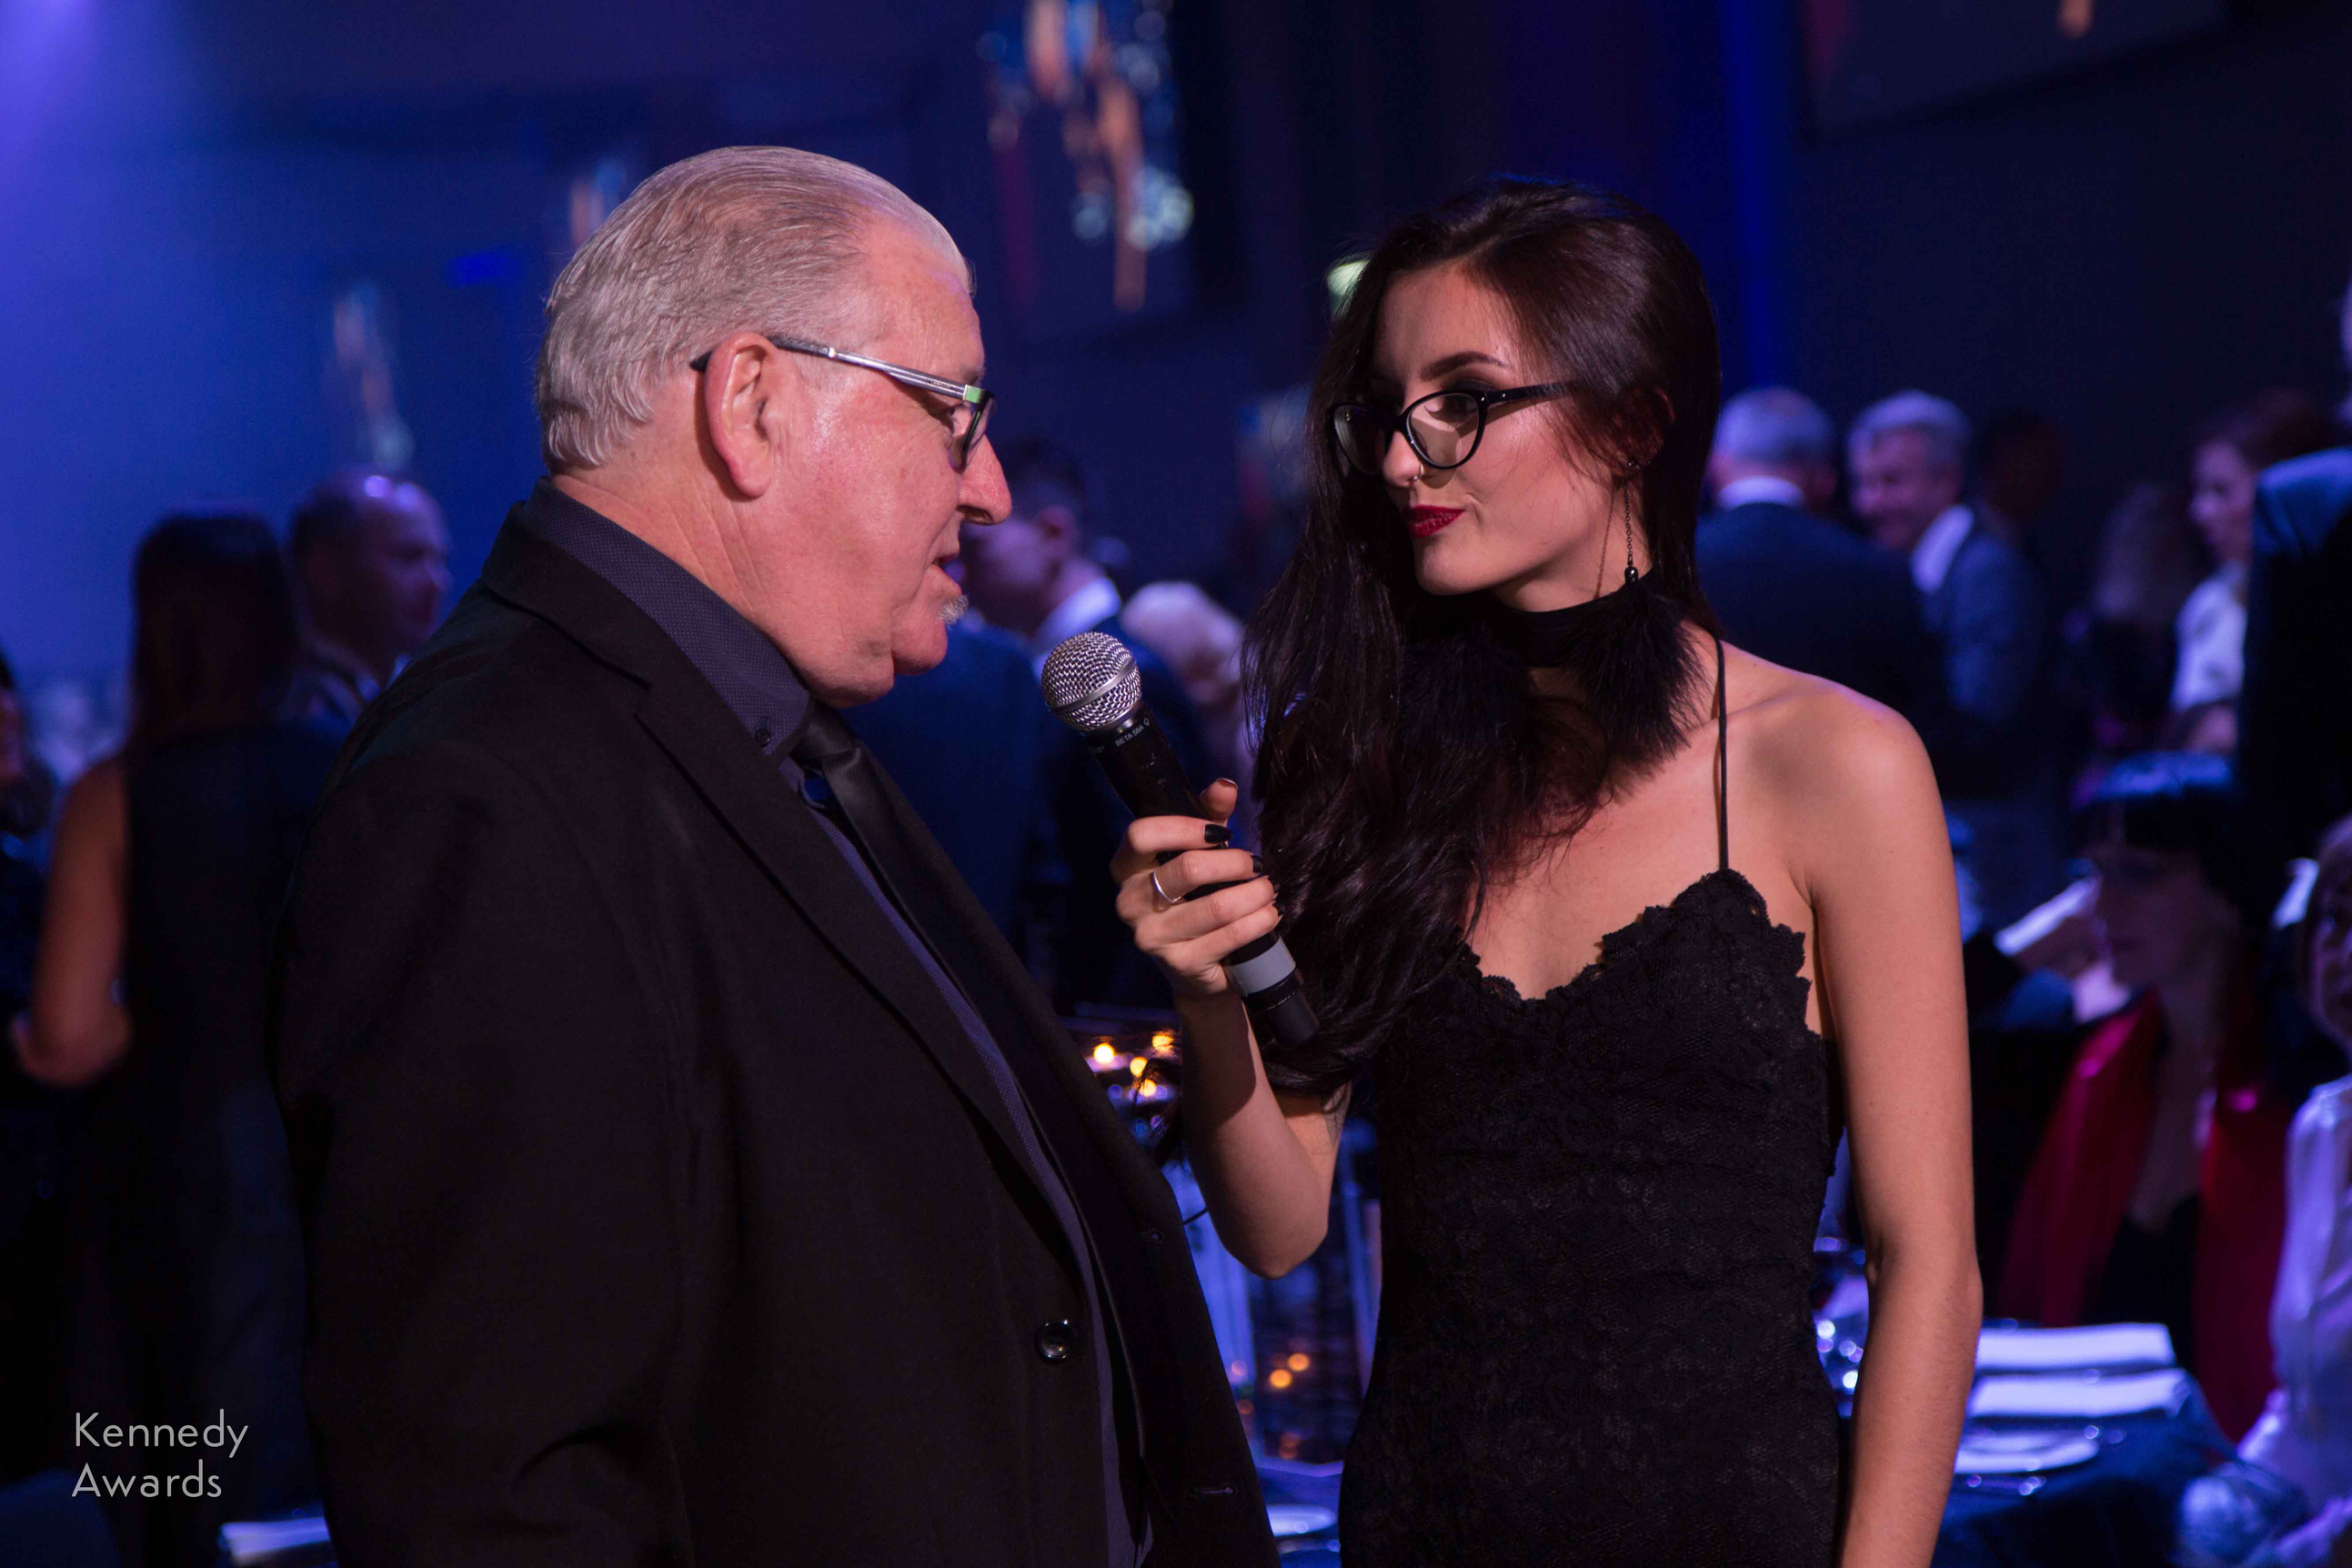 White Runway host Jett Allen-Rhoades interviews Kennedy Foundation Trustee Geoff Greenwood on his magnificent attire